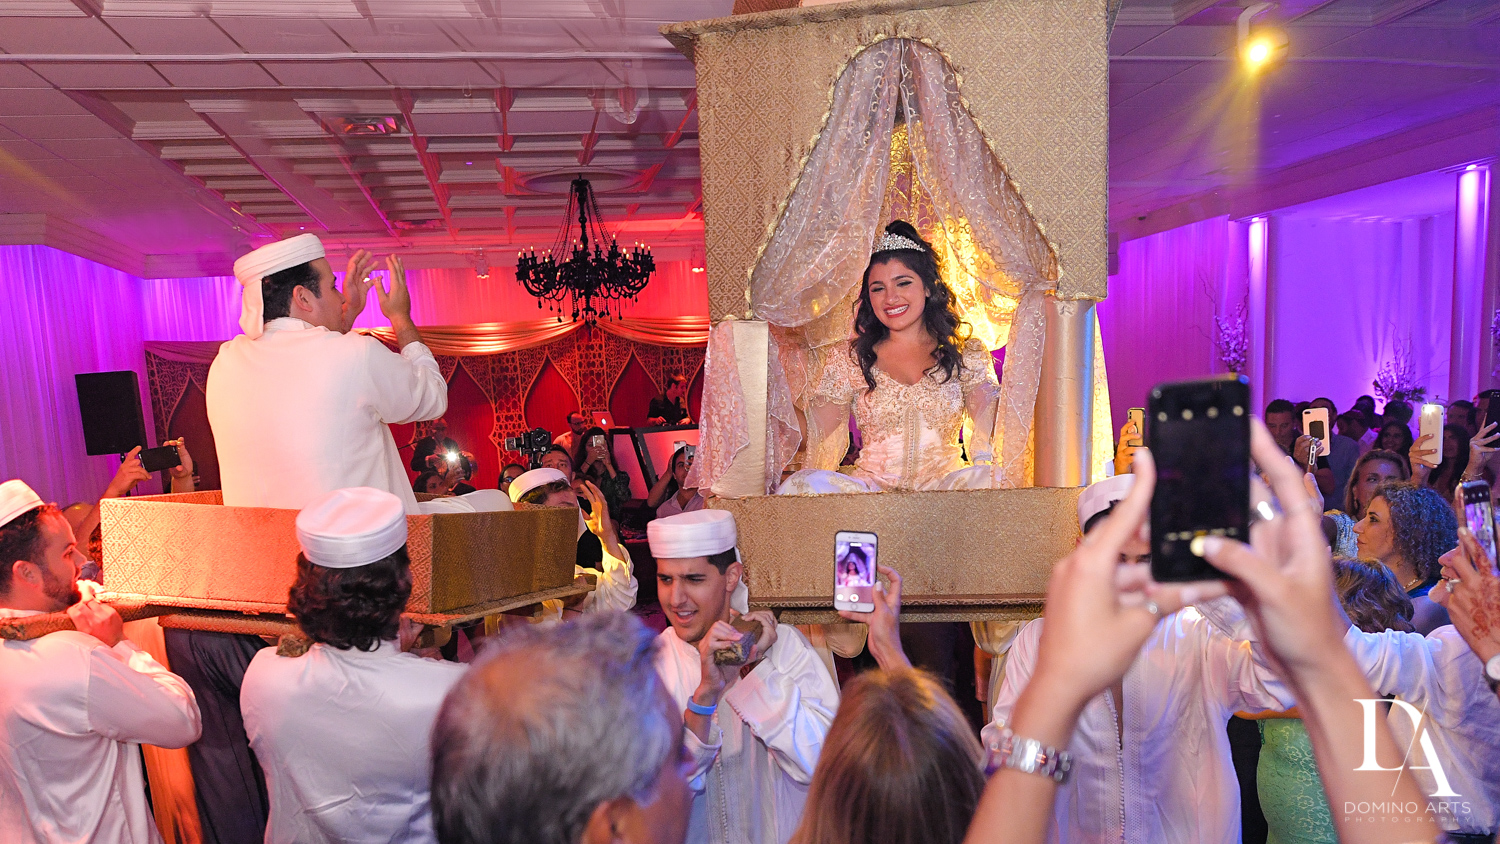 Turkish wedding at Authentic Morrocan Jewish Henna Party by Domino Arts Photography